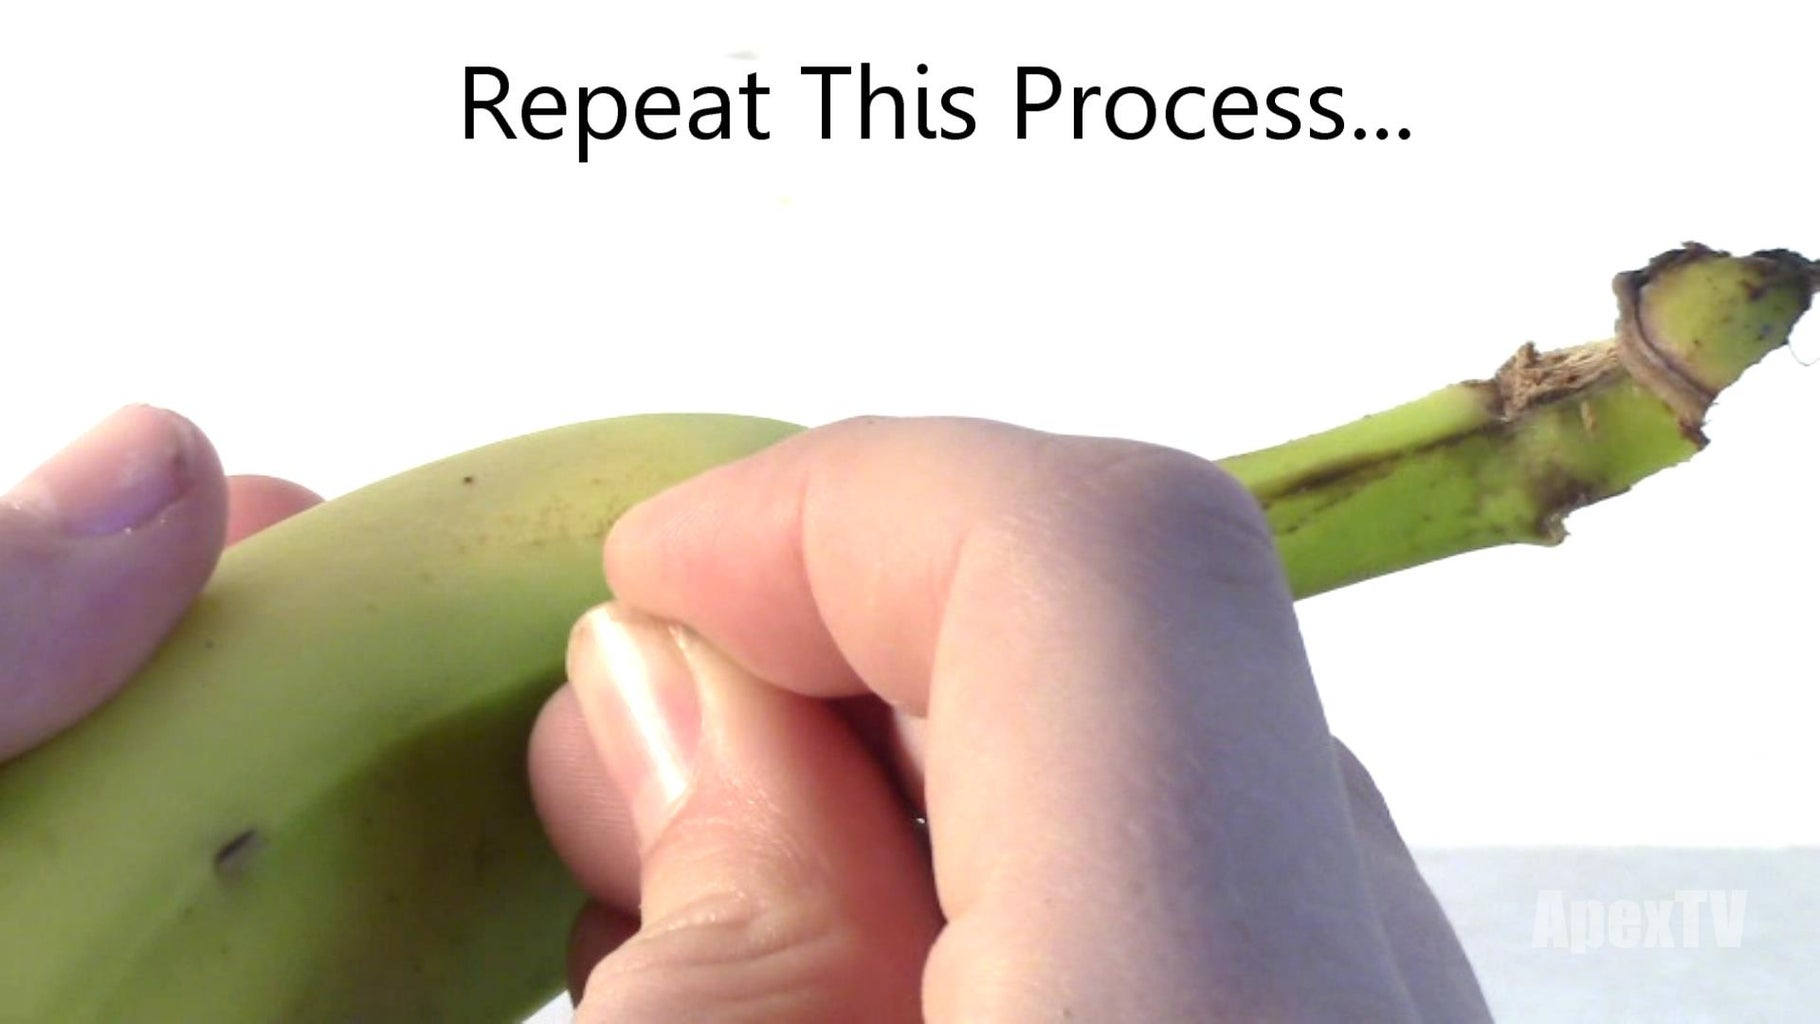 Repeat the Process